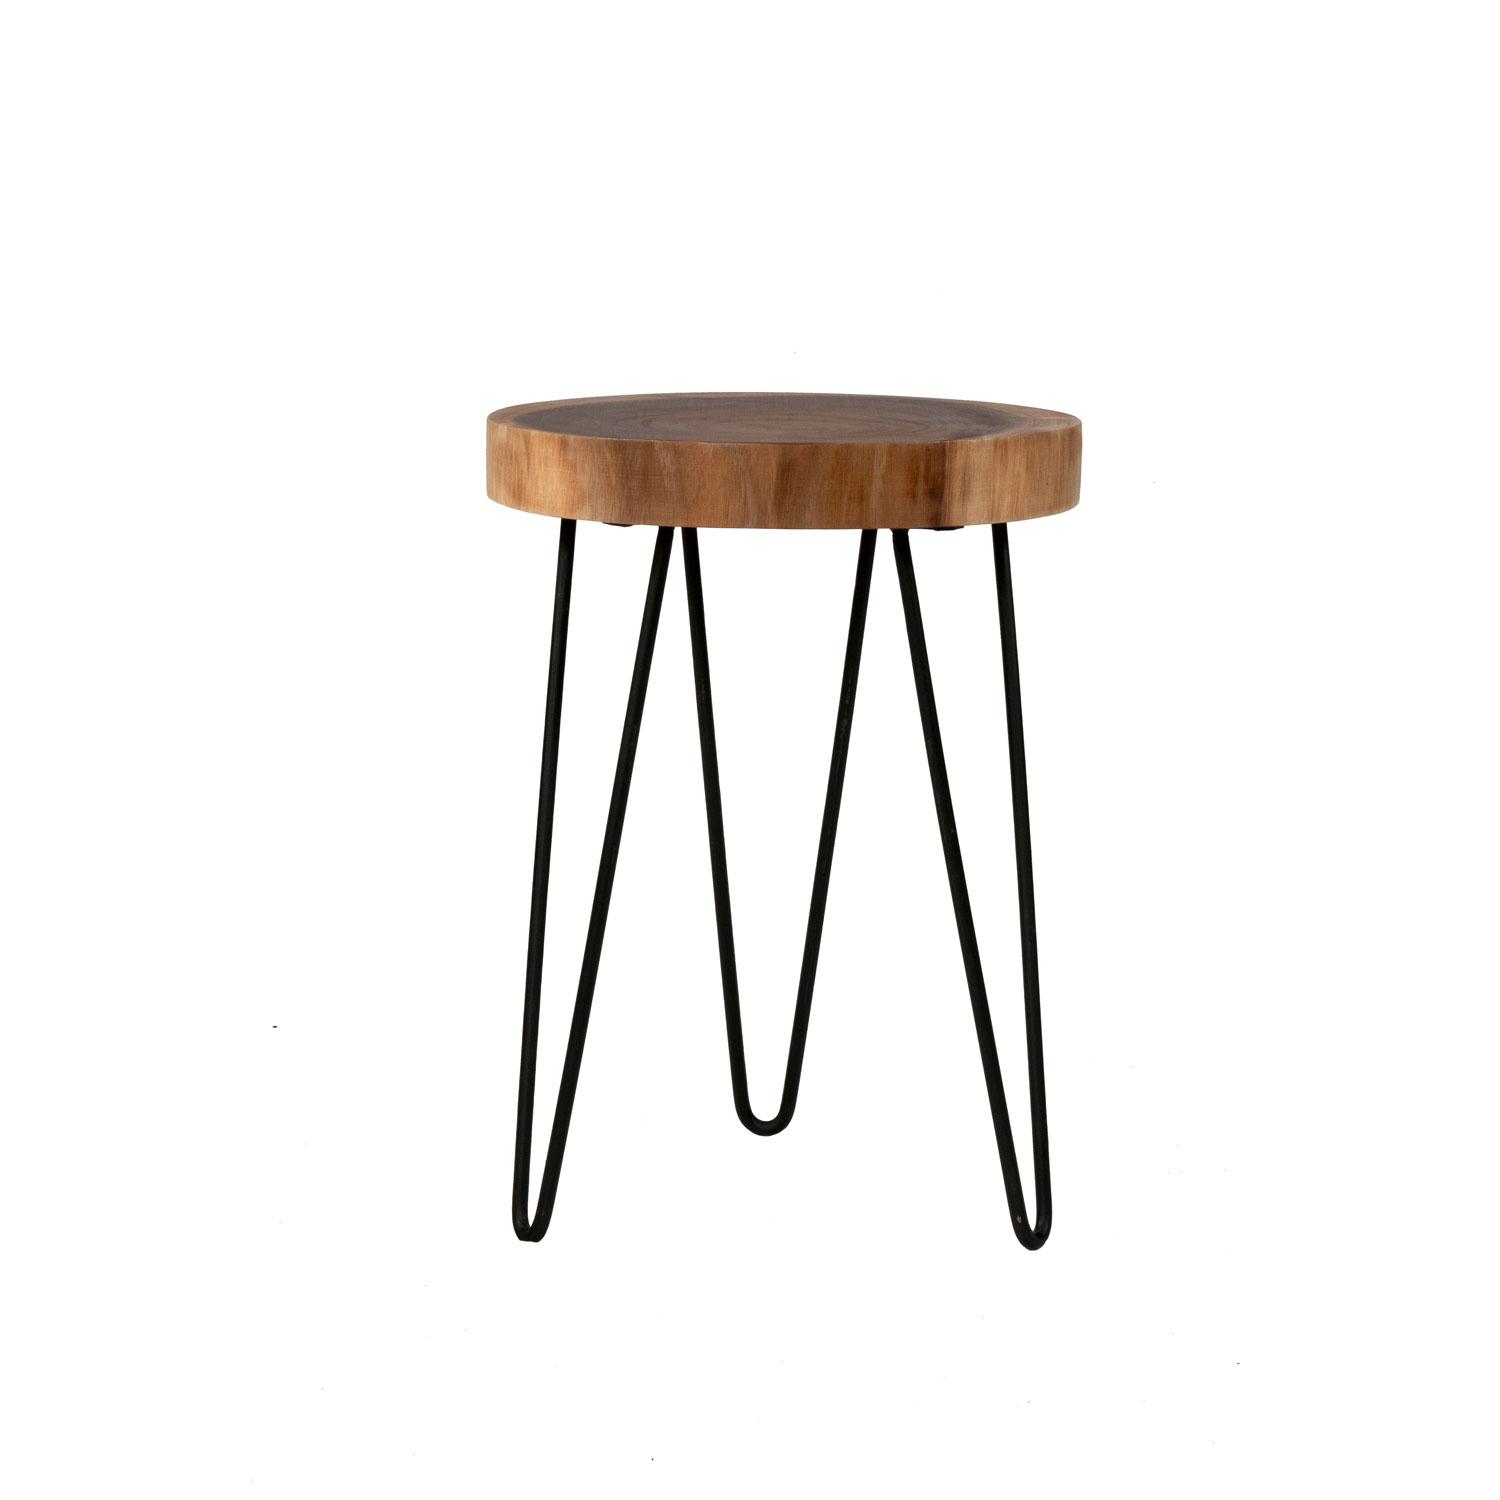 east main laredo brown teakwood round accent table hover zoom pool furniture sets modern runner wood coffee ethan allen side nesting set very narrow console plexiglass long